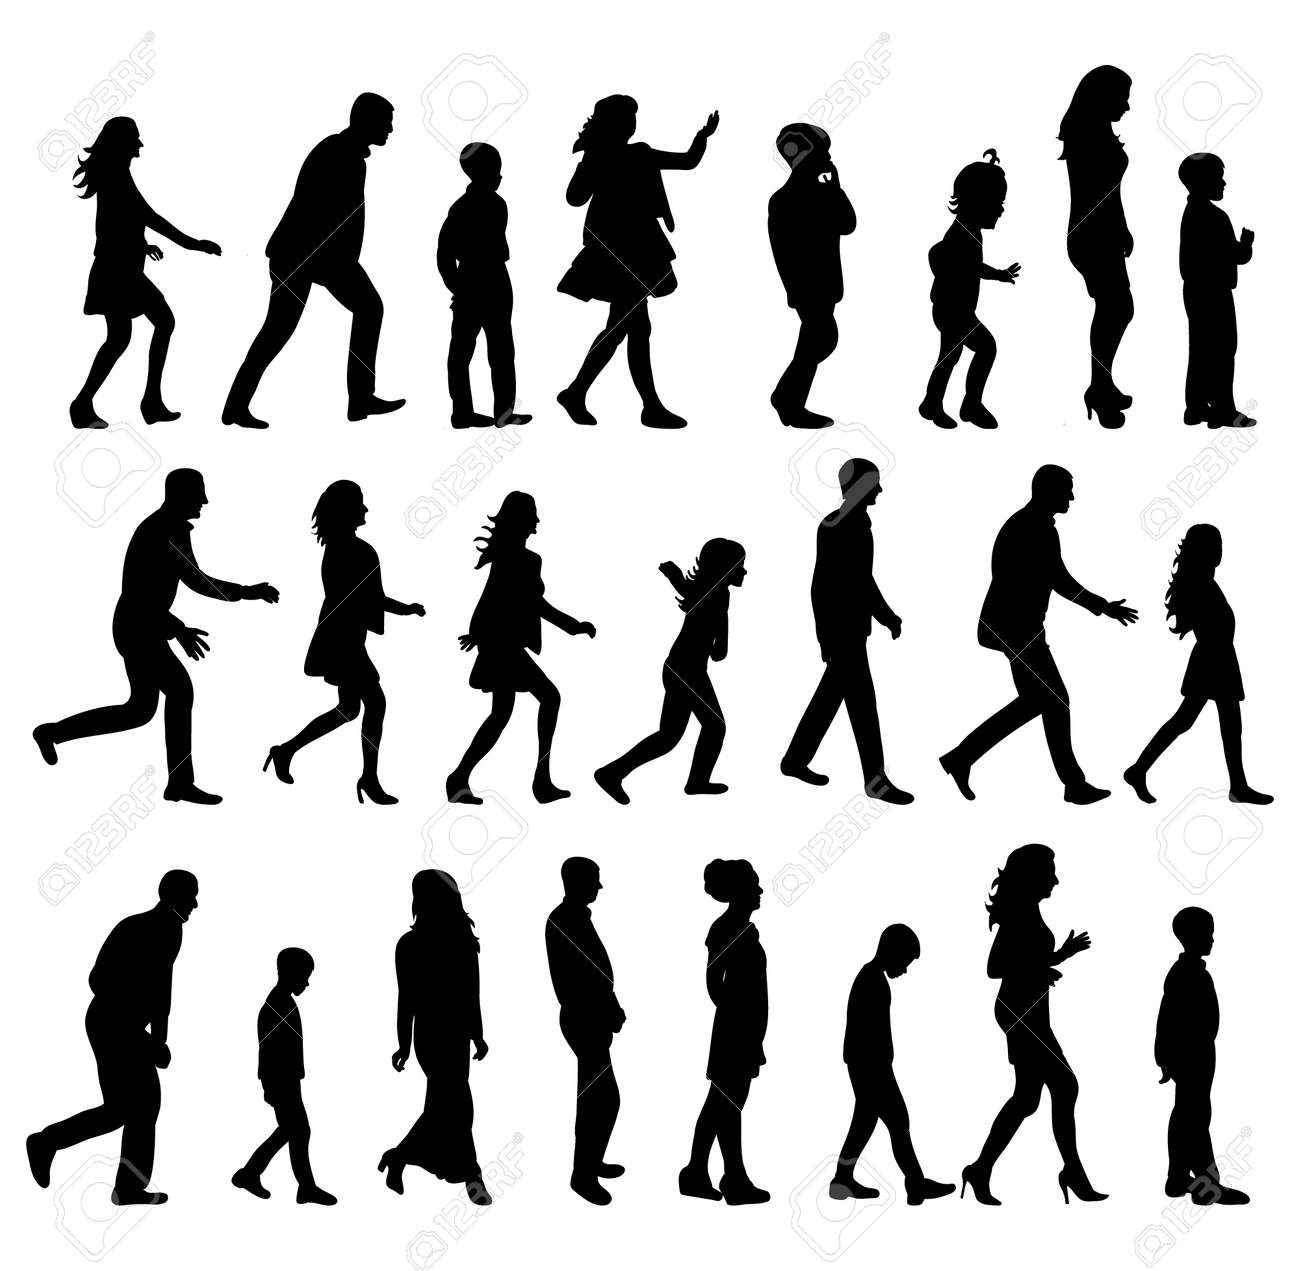 silhouette people walking sideways collection - 153888853